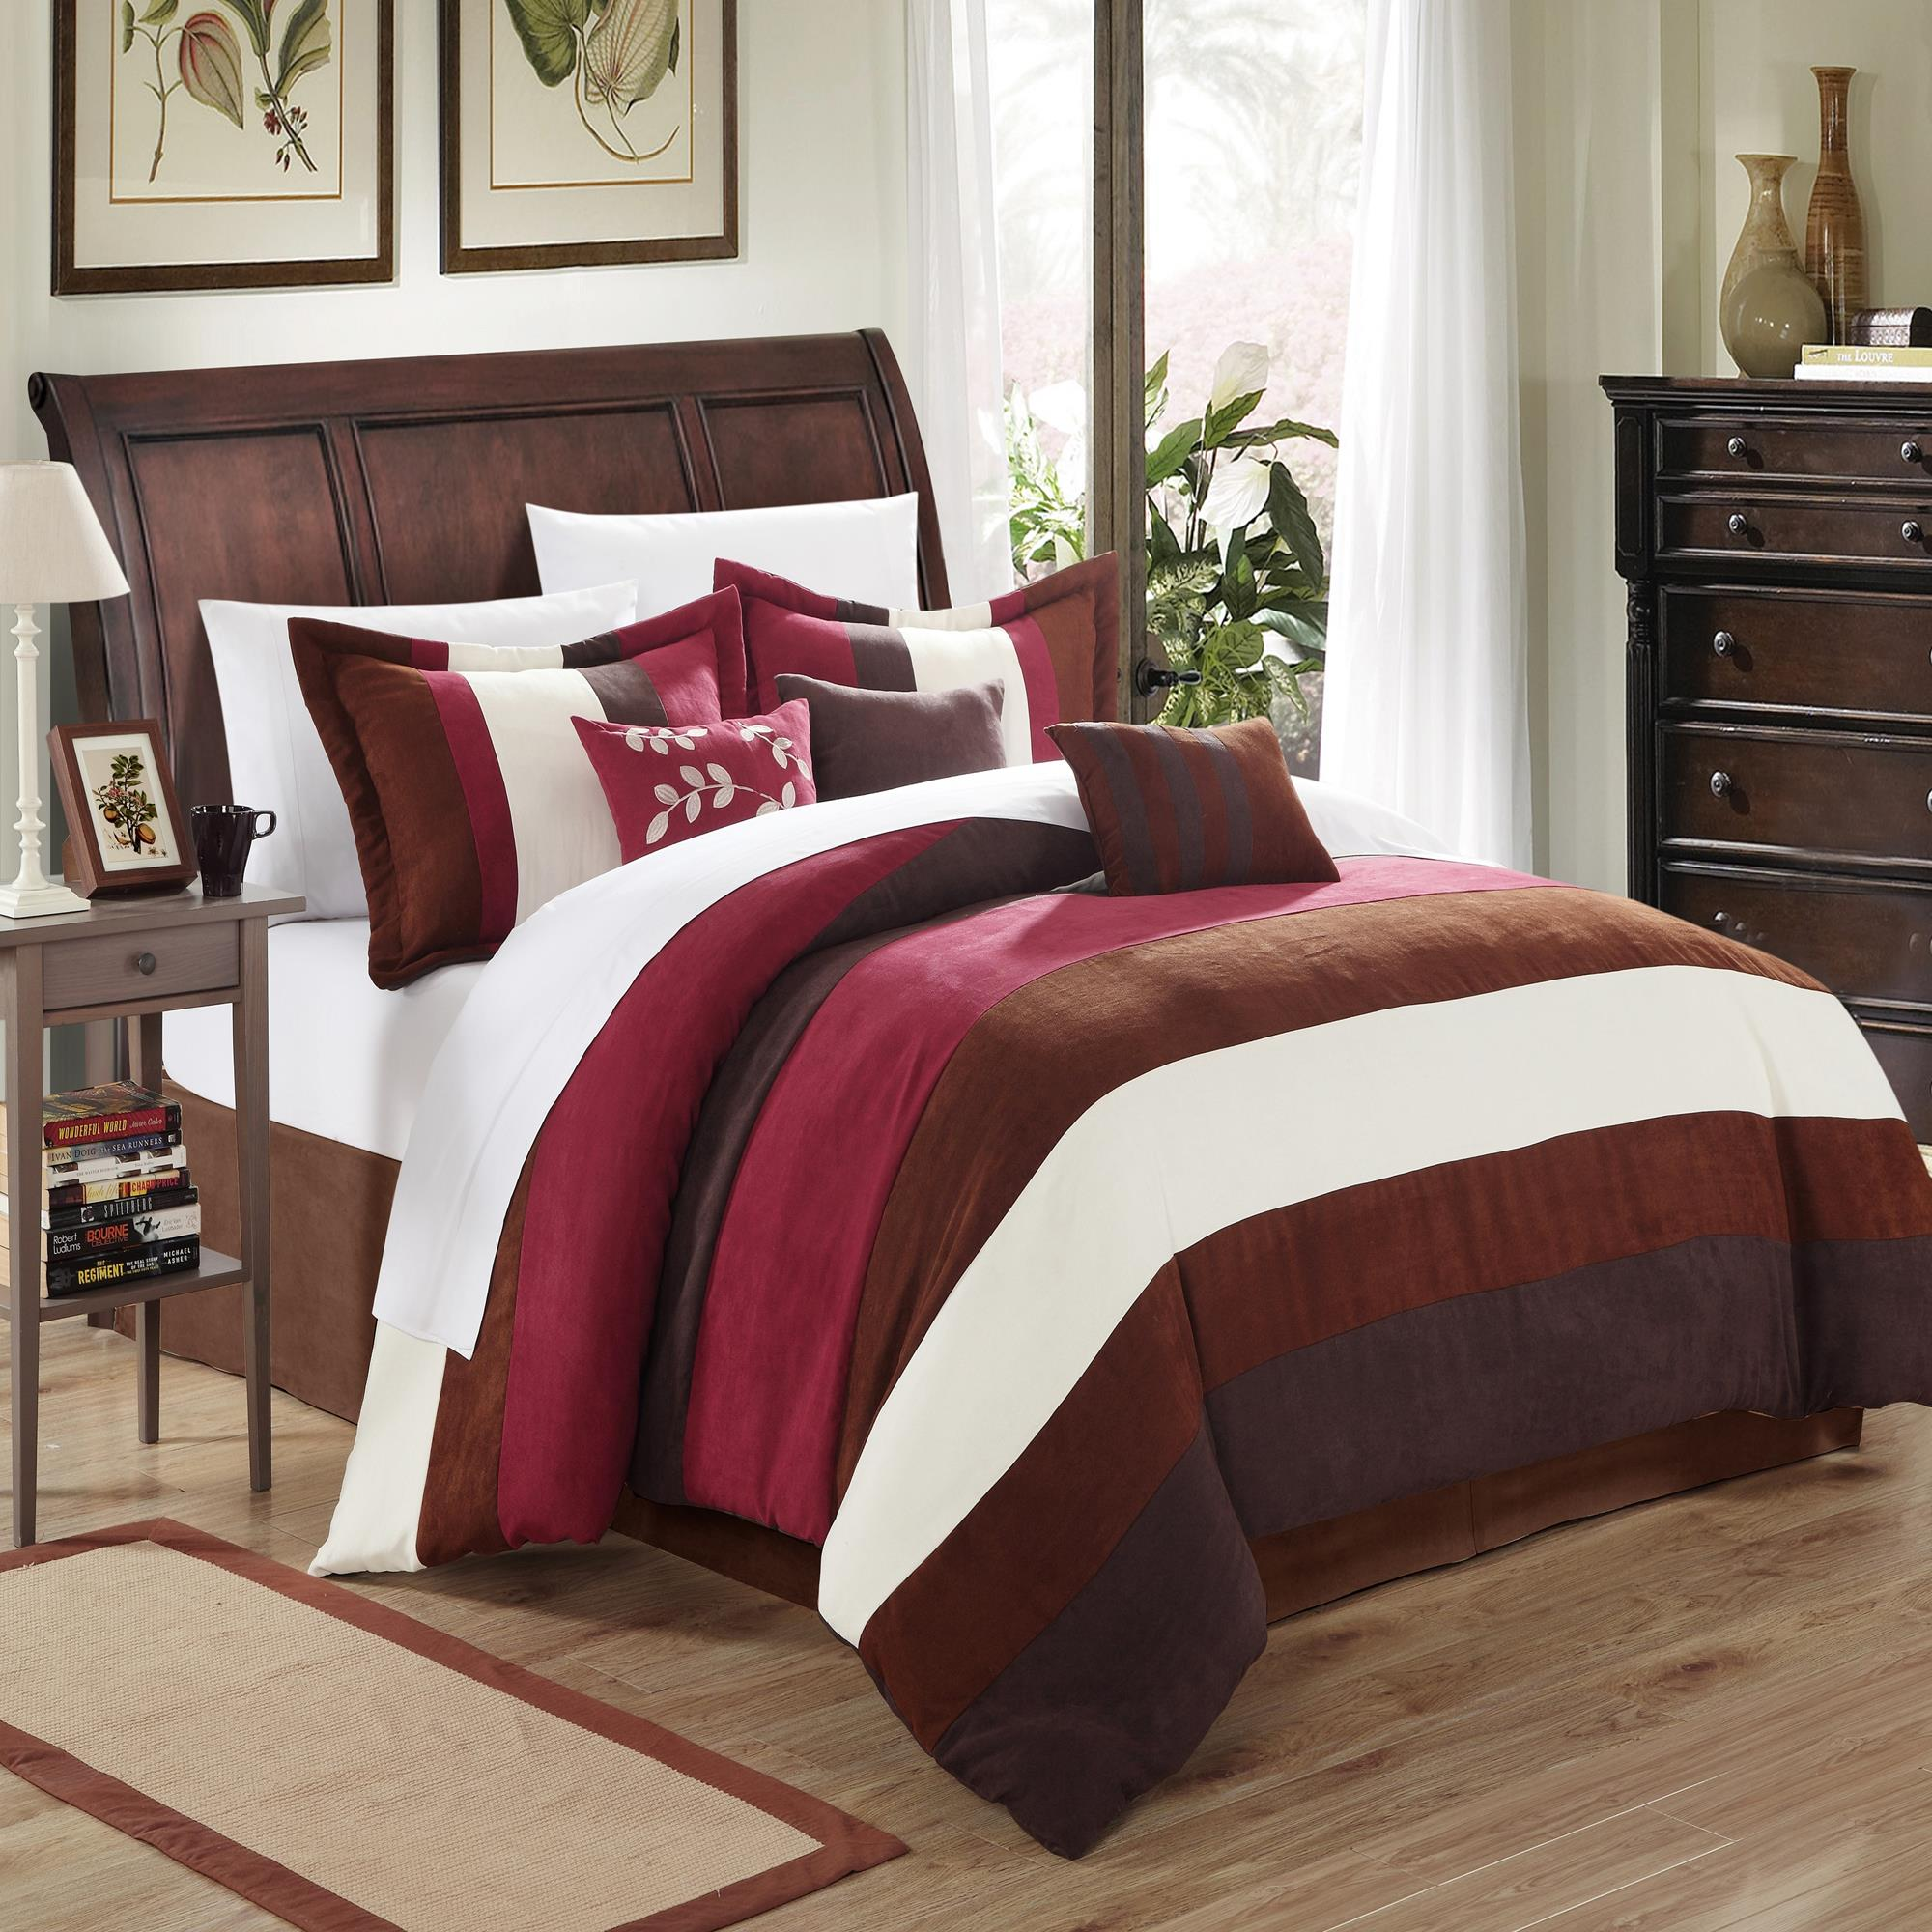 Chic Home Cathy Microsuede Burgundy, Brown, Ivory 7 Piece Comforter Bed In A Bag Set